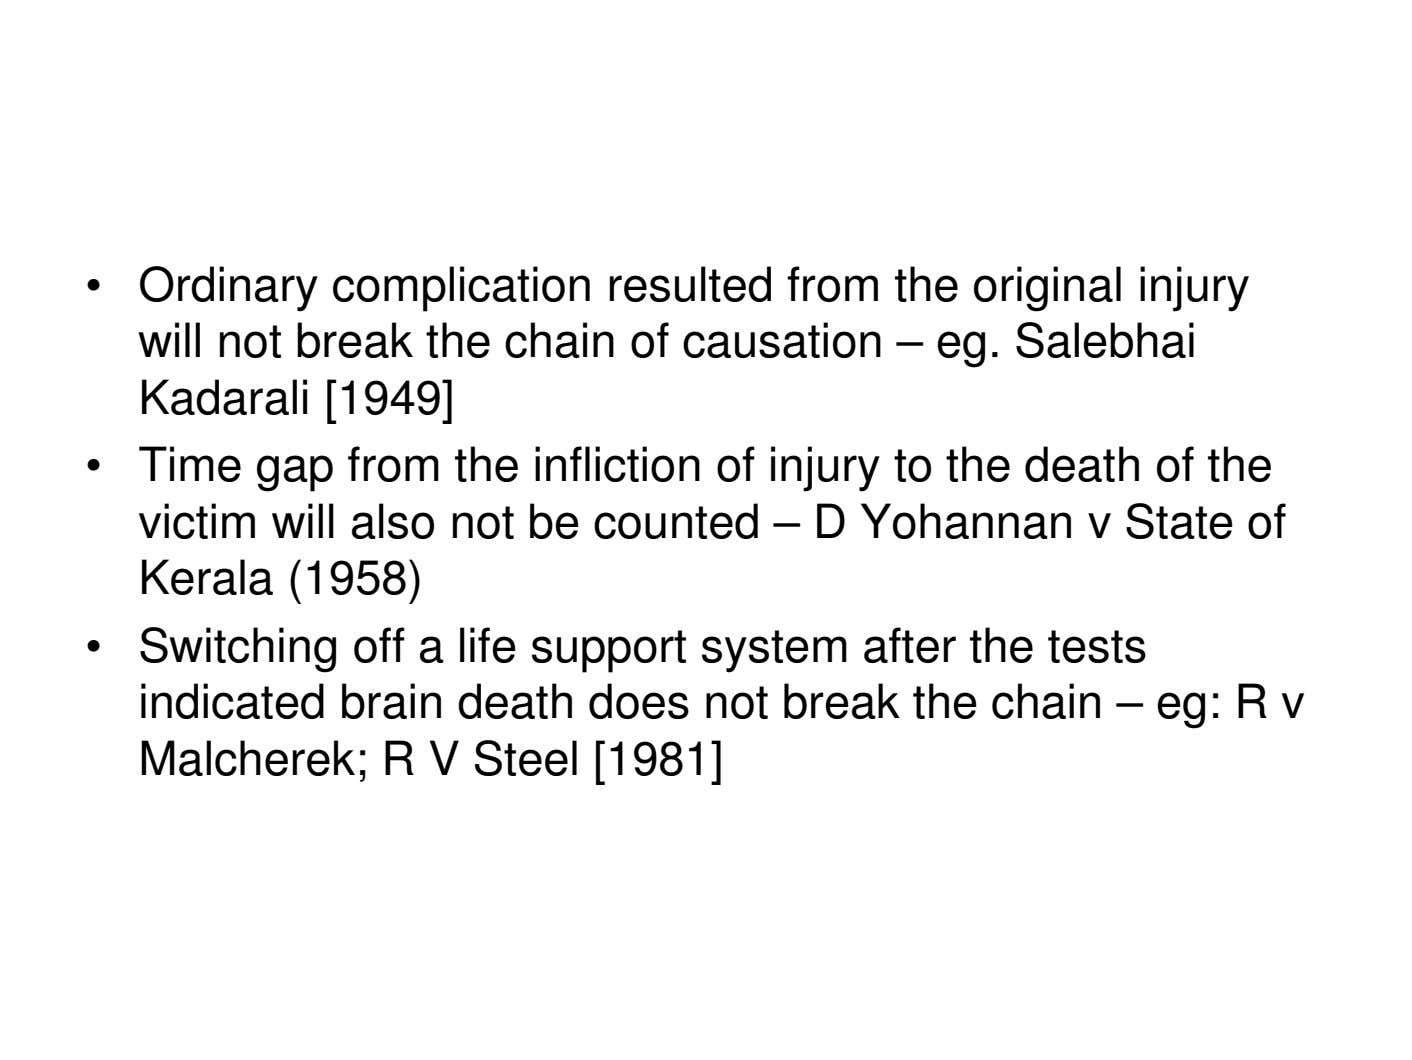 • Ordinary complication resulted from the original injury will not break the chain of causation